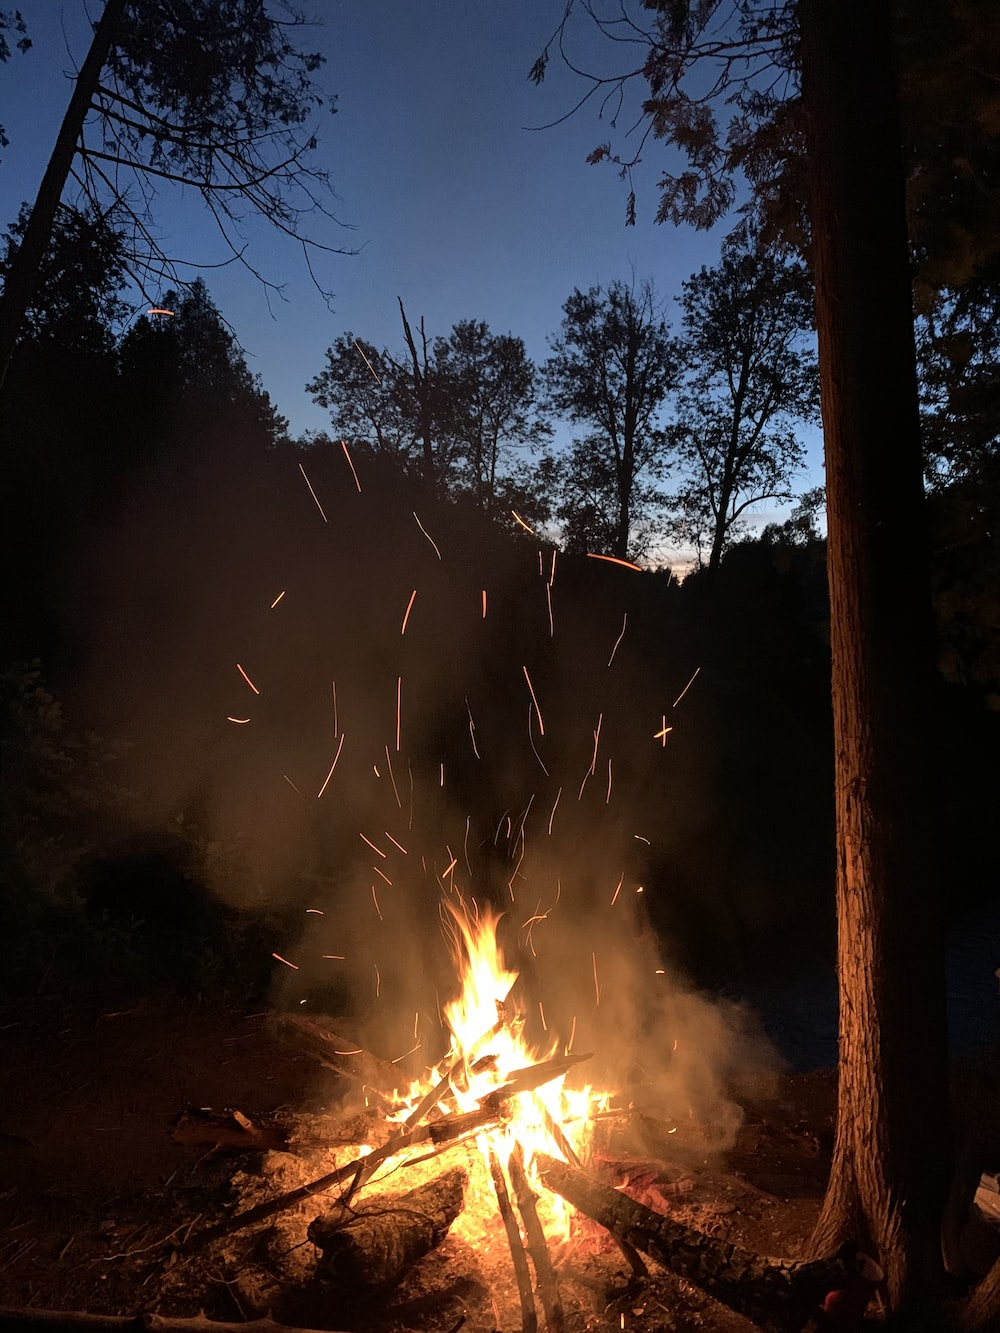 fire on forest during night time